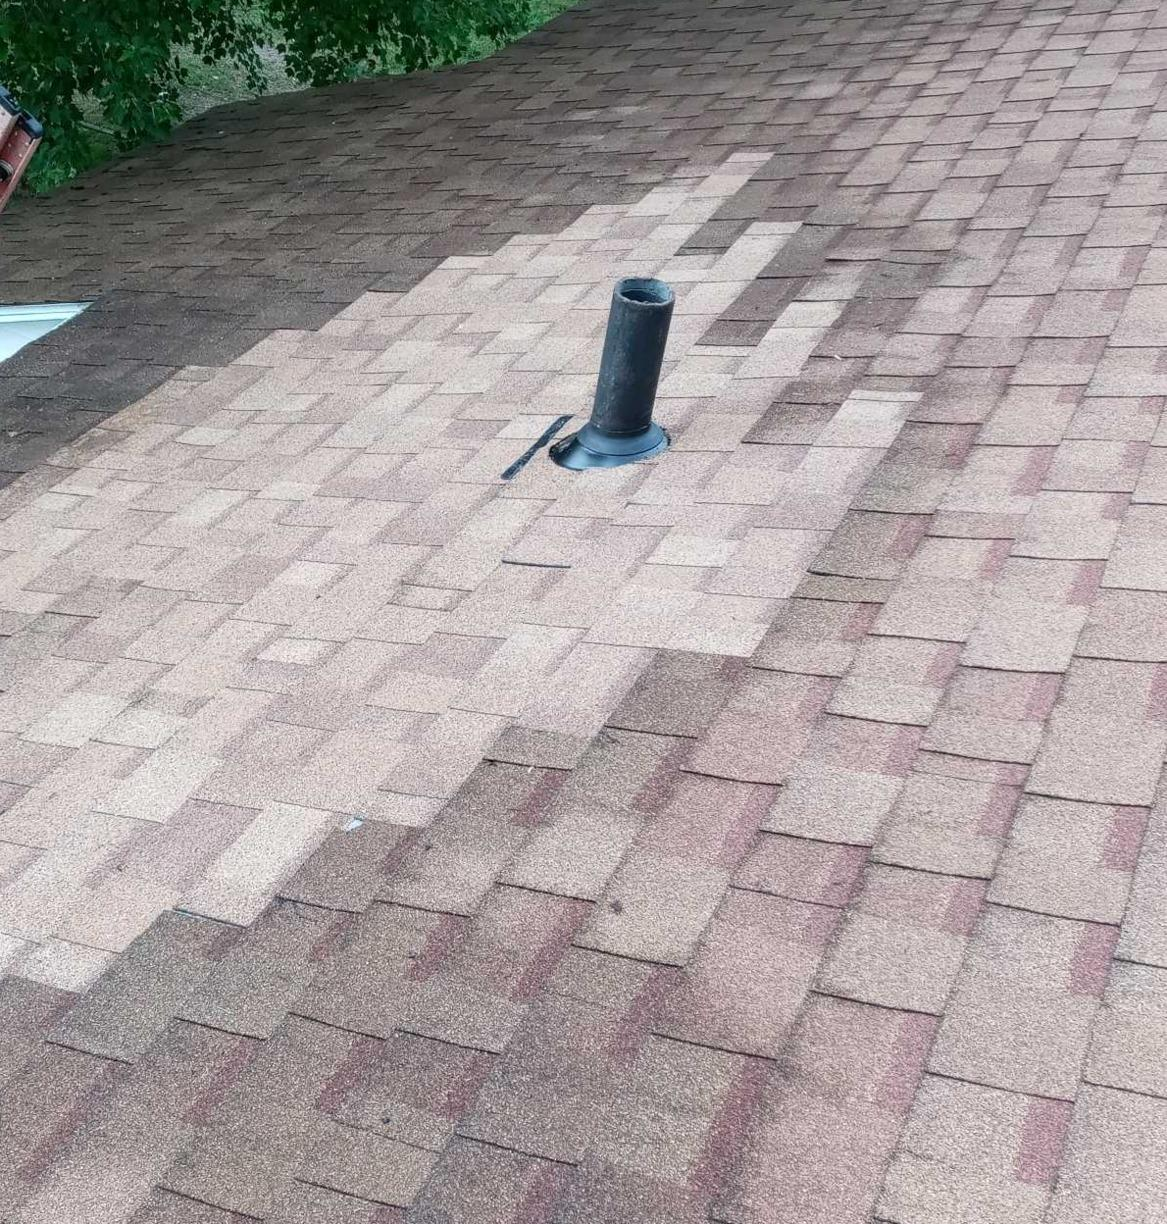 Improperly Installed Vent Pipe Repaired in Battle Creek, MI - After Photo